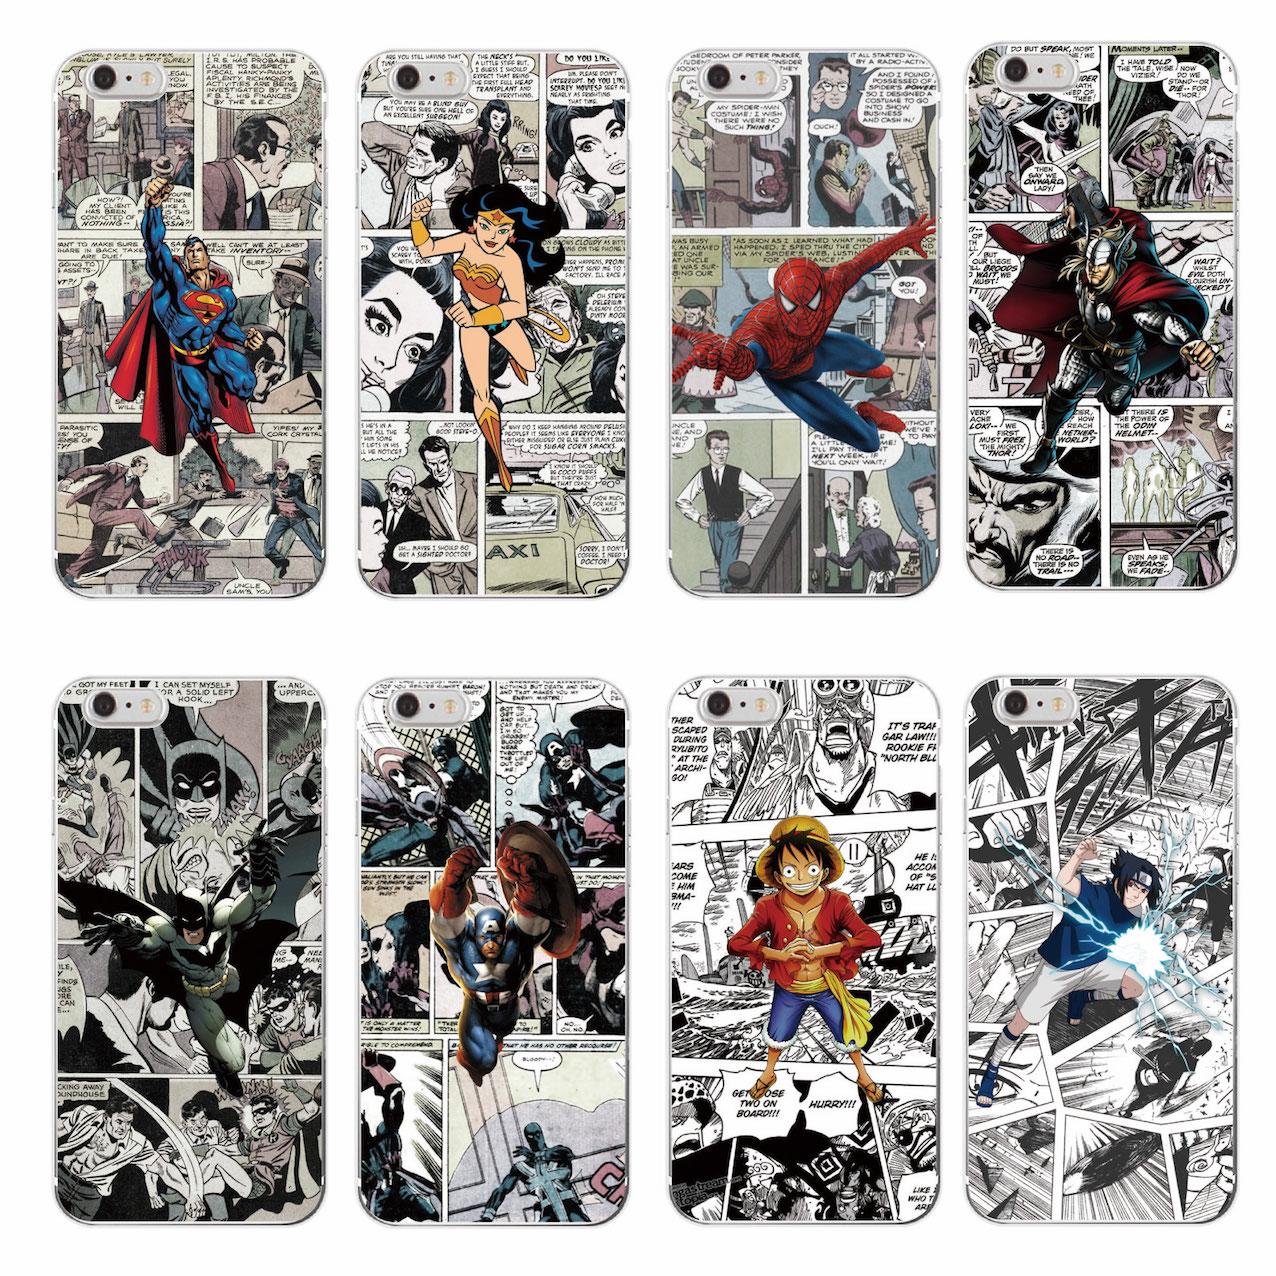 Cartoons <font><b>Marvel</b></font> Comics Batman <font><b>Spider</b></font> <font><b>Man</b></font> Wonder woman Captain America Soft Phone <font><b>Case</b></font> <font><b>For</b></font> <font><b>iPhone</b></font> 7 7Plus <font><b>6</b></font> 6S 6Plus 5 5S SE 5C